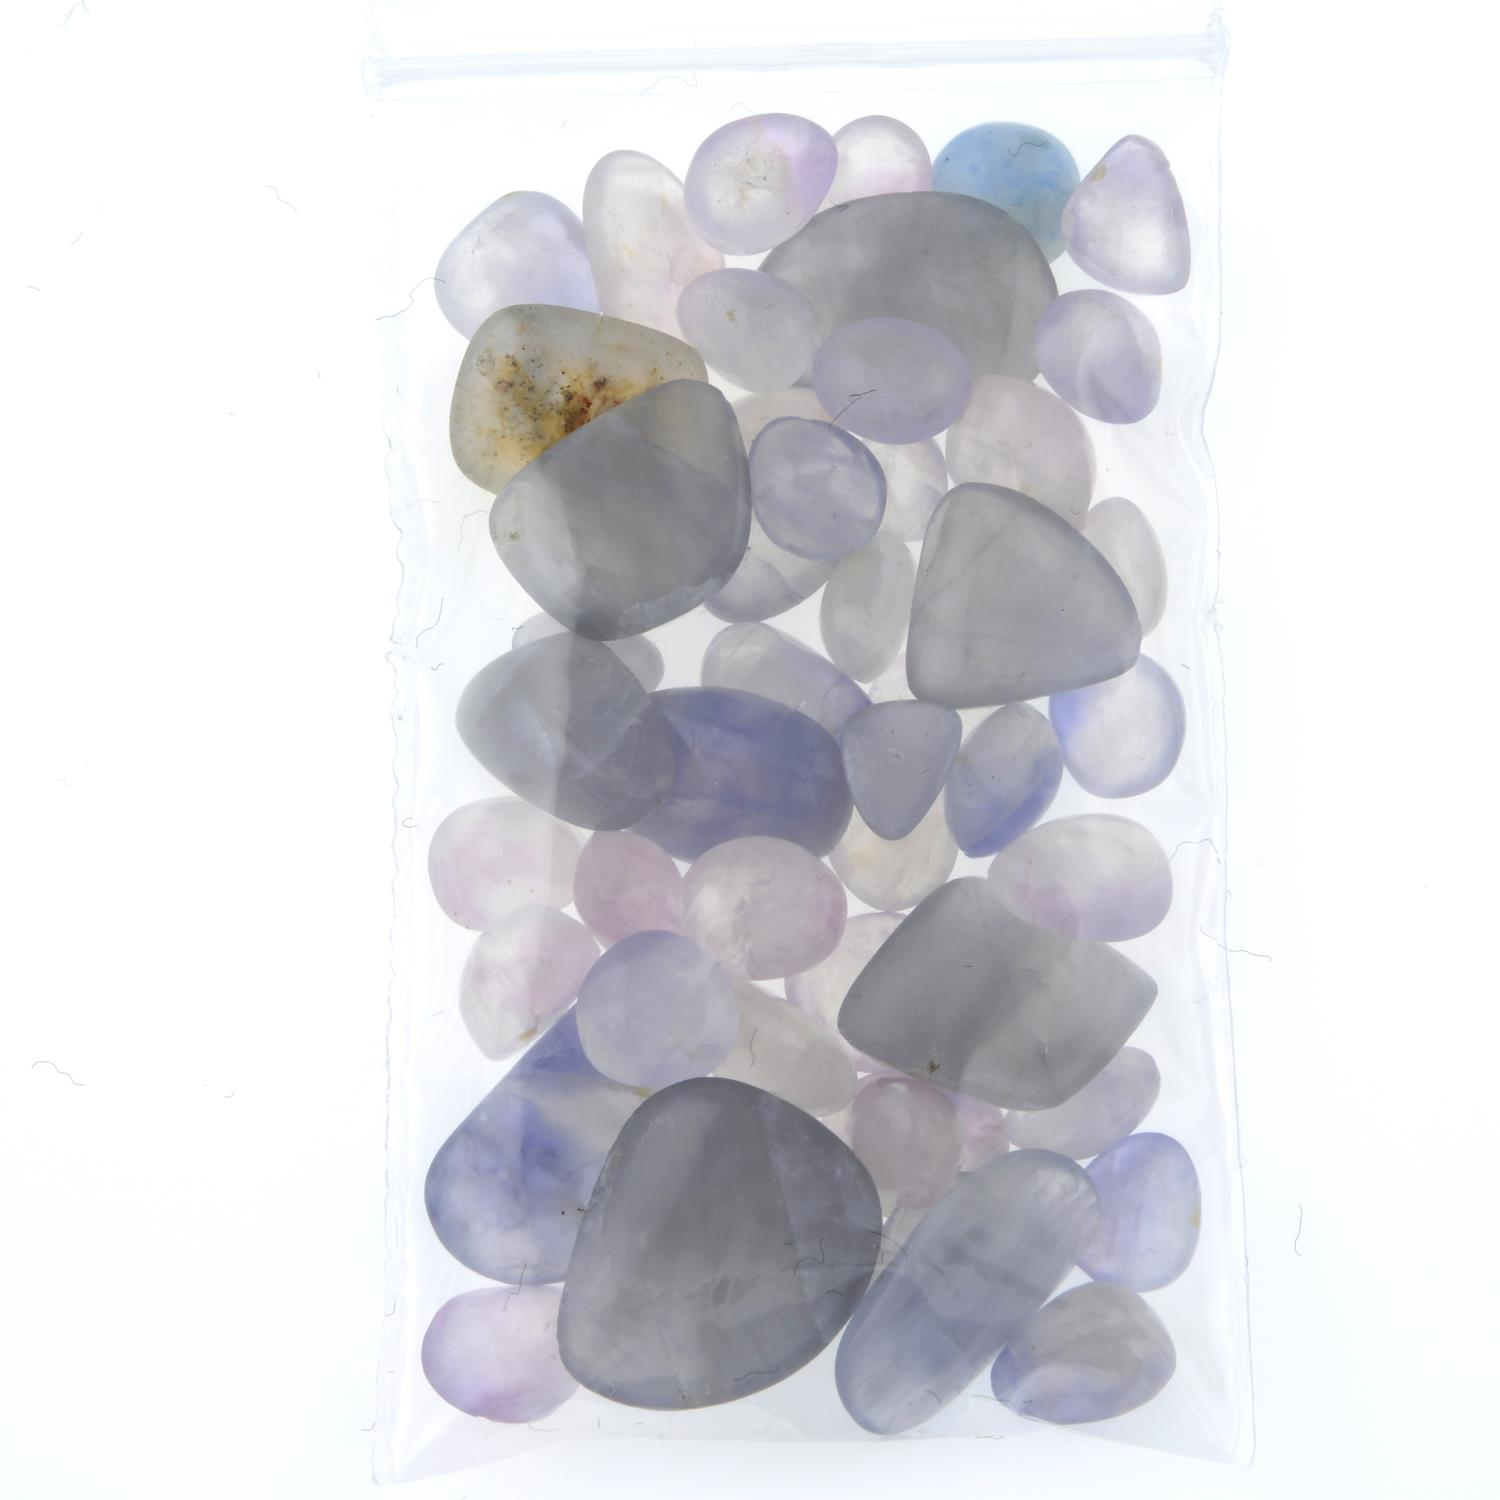 A selection of tumbled hackmanite, weighing 102cts. - Image 2 of 2